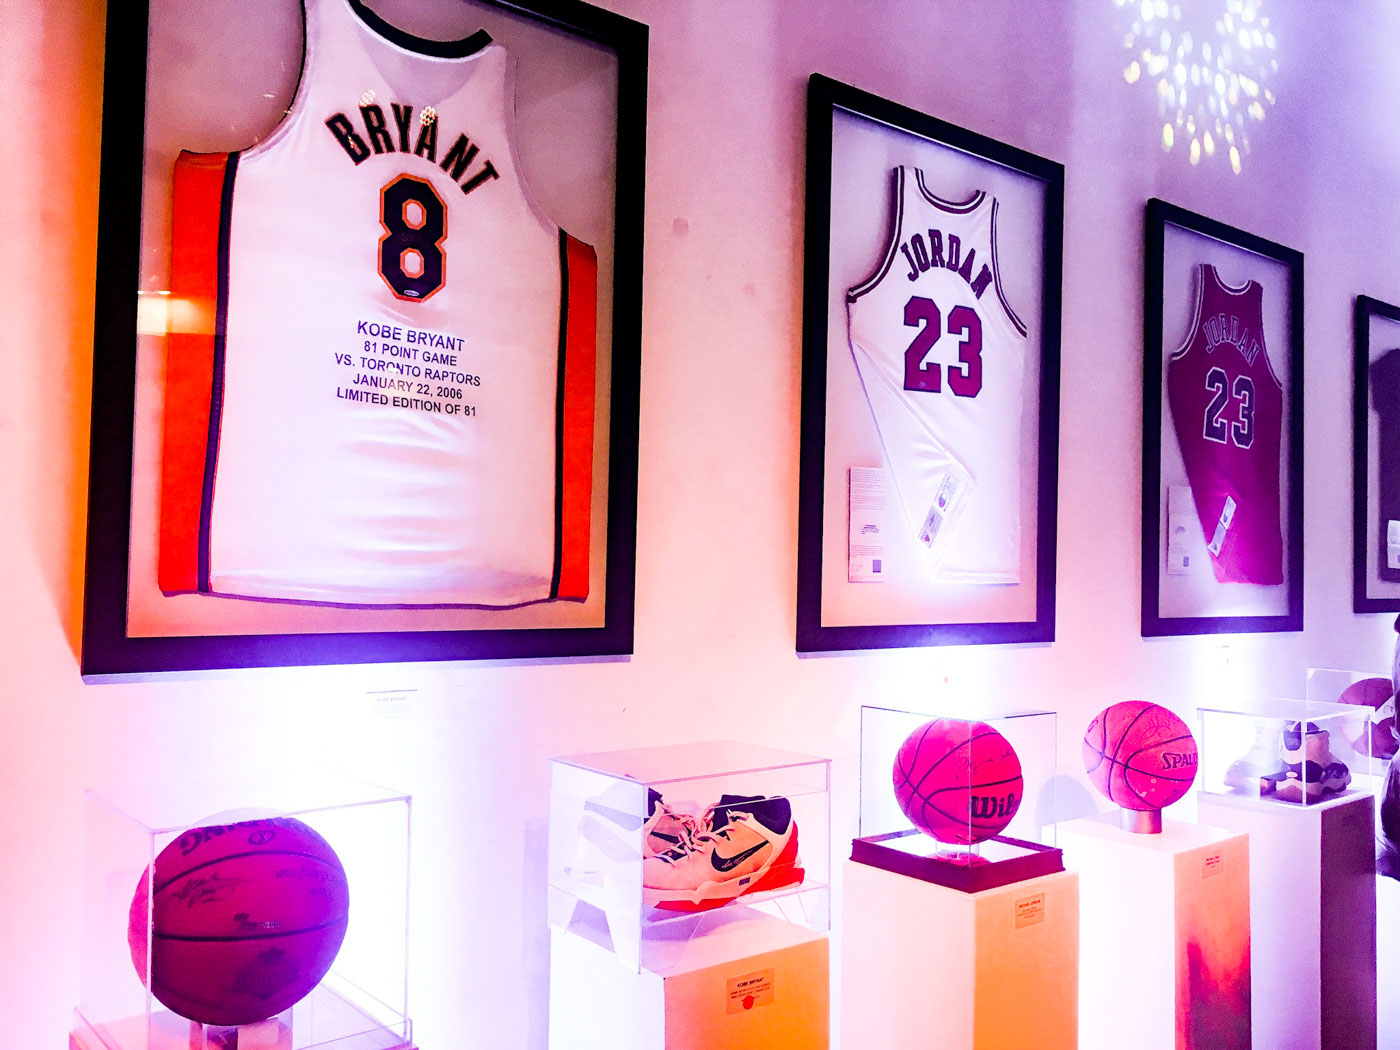 STUFF FROM THE BEST. HOFA displays its wide range of collectibles. Photo by Beatrice Go/Rappler